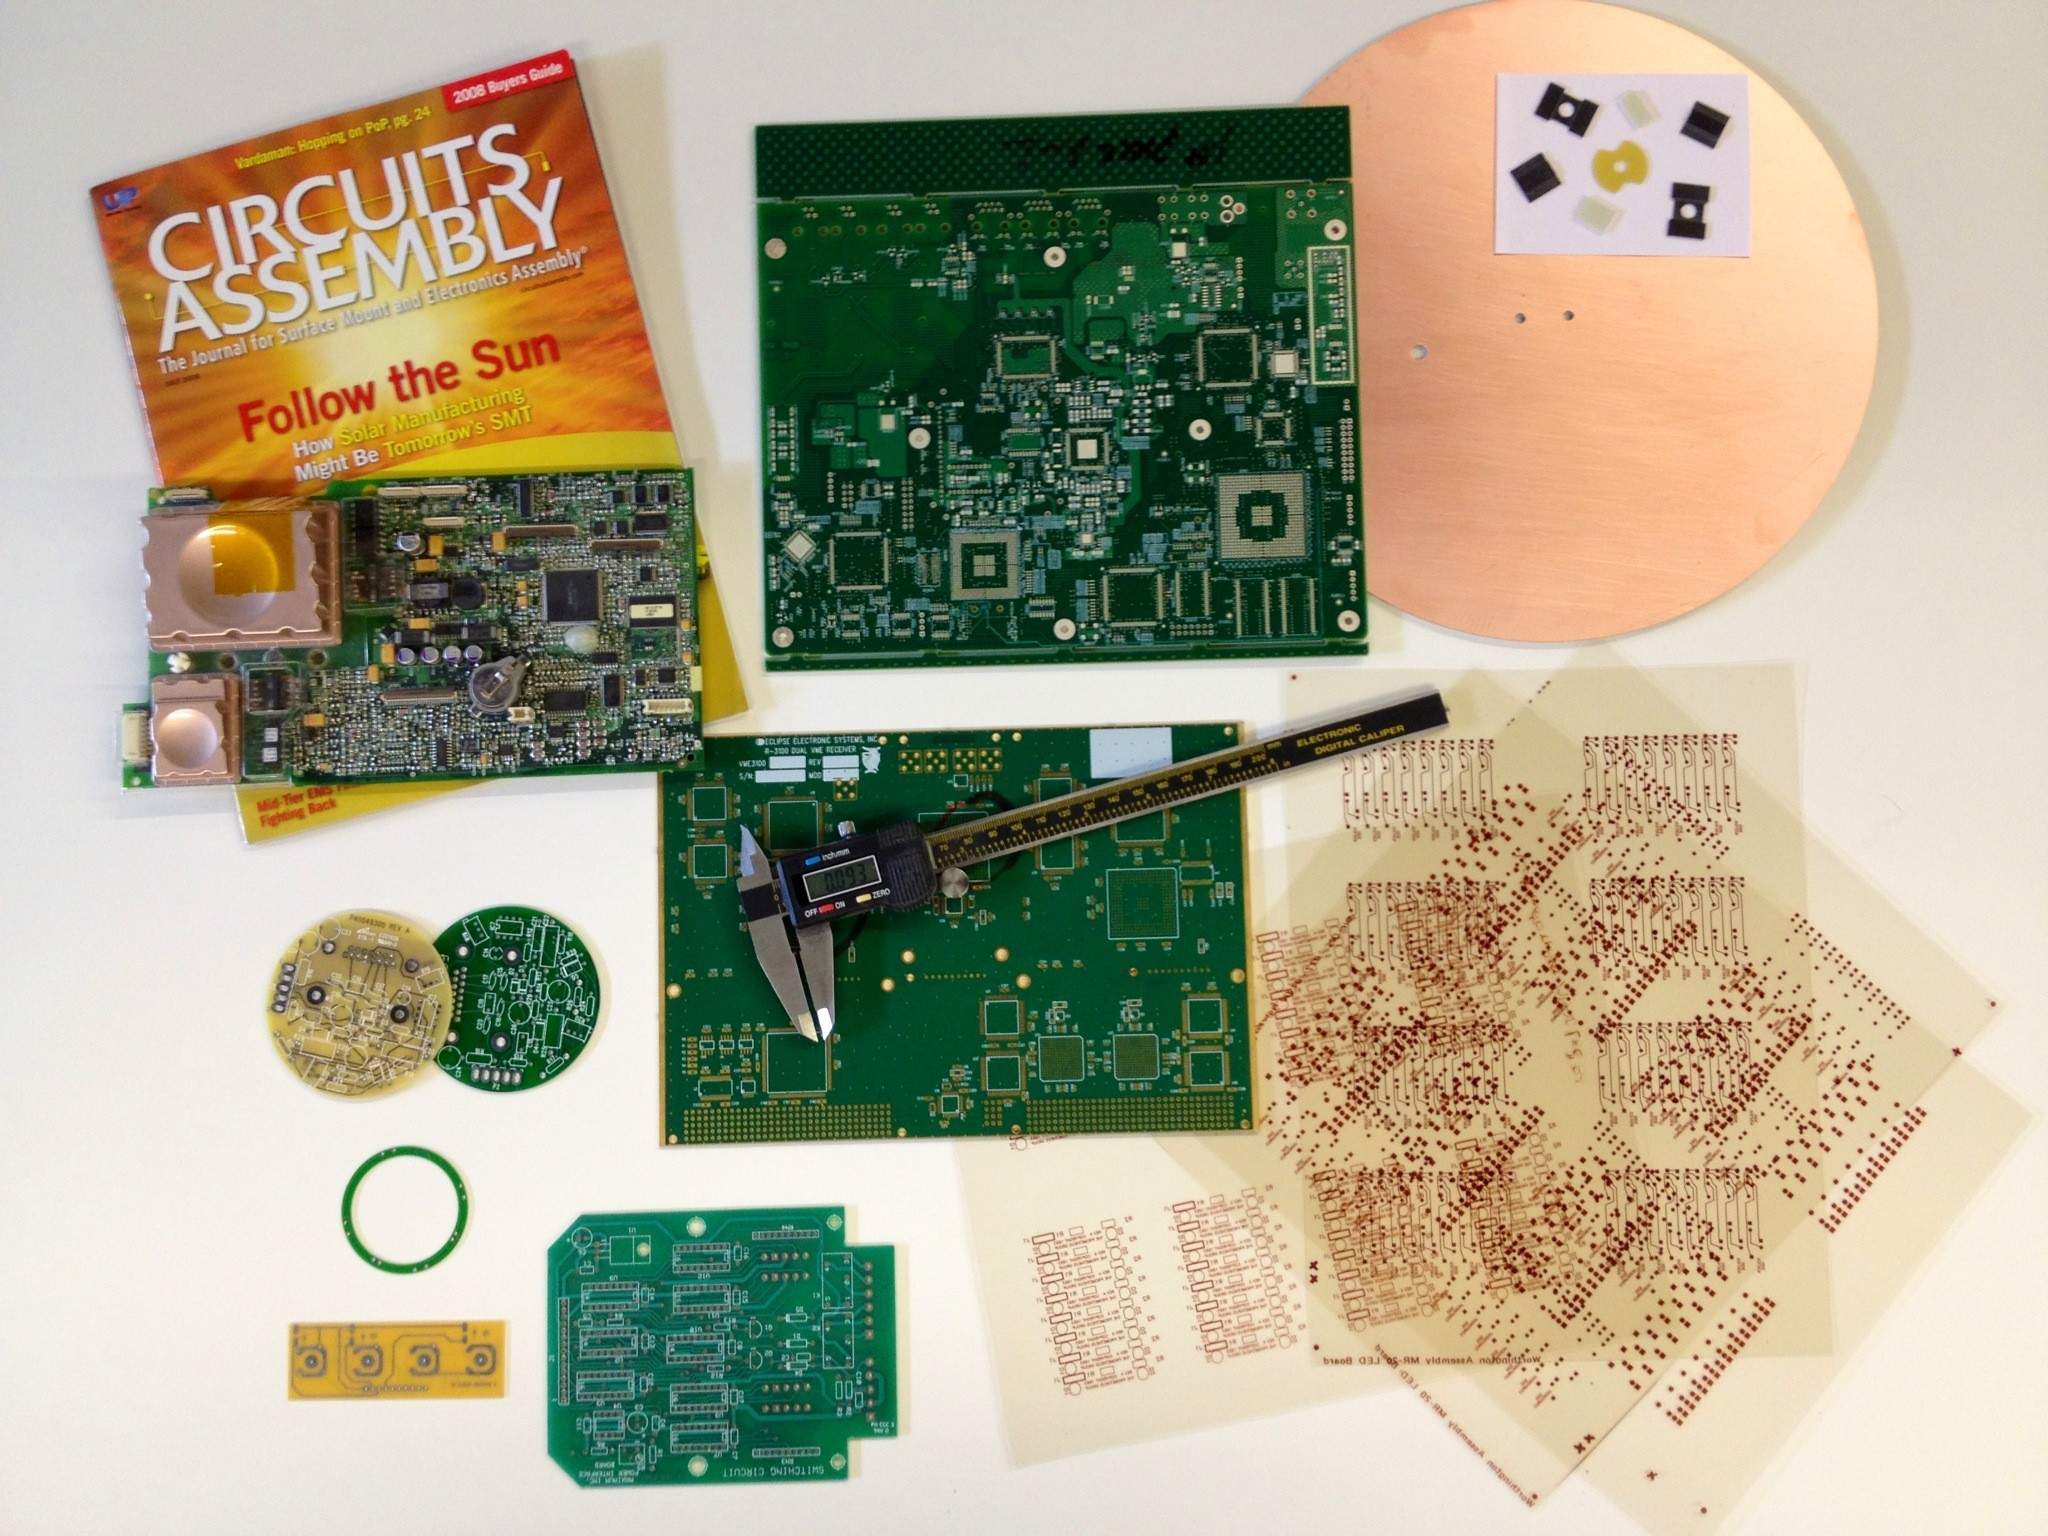 Aci Pcb Inc Printed Circuit Boards As Before We Can Copy The Onto A Board And Specialty Parts Additive Circuitry Modification